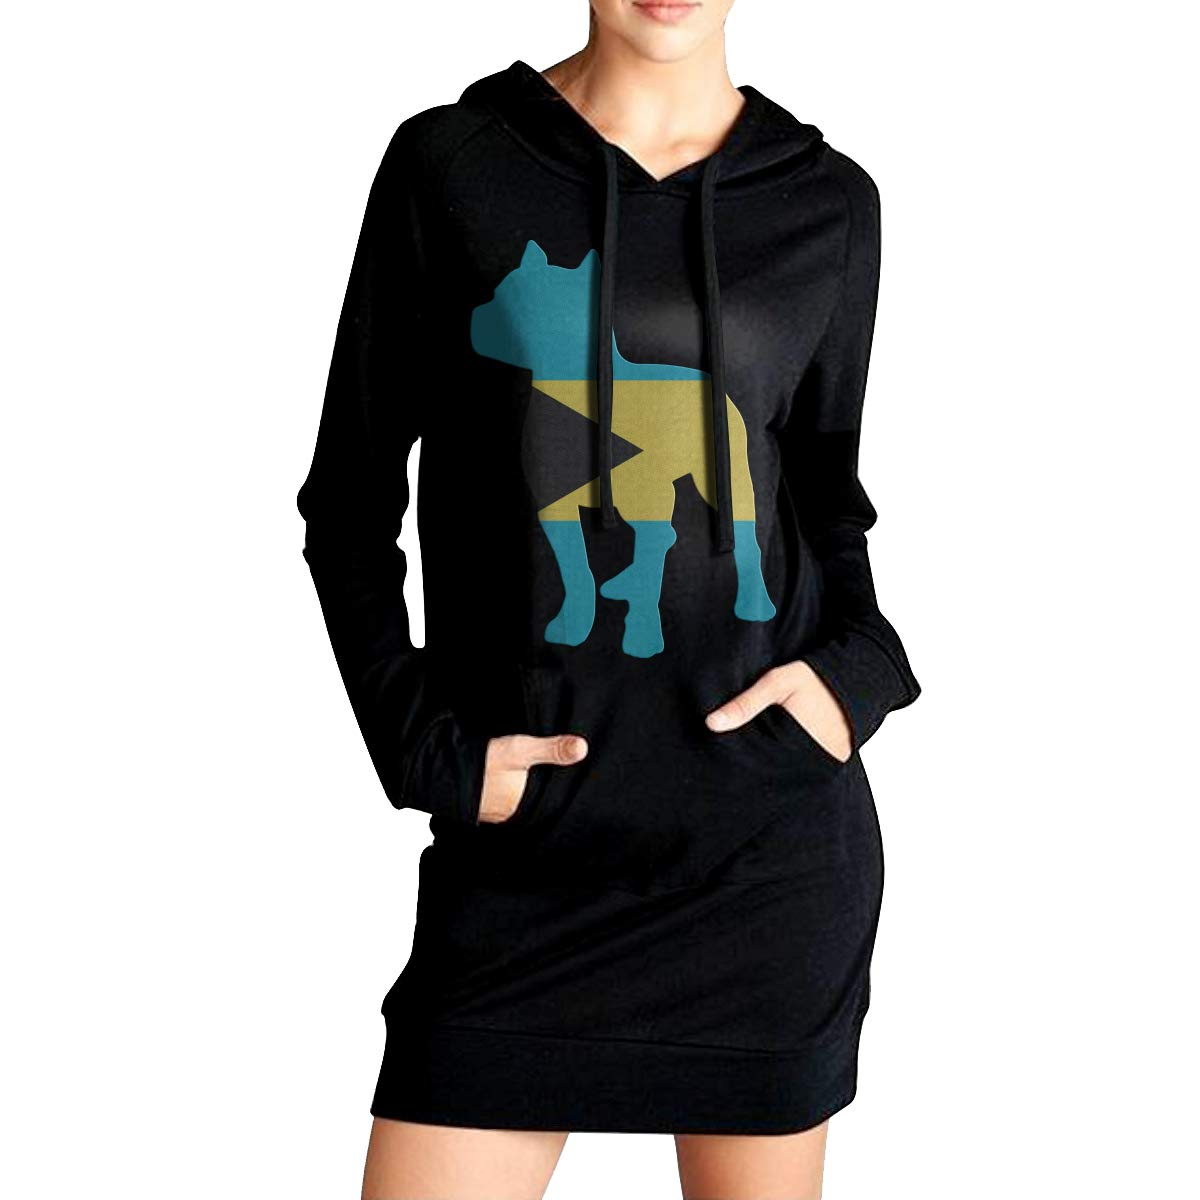 ADA/&KGH Womens Sports Sweatshirt Long Hoodies Dress Patriotic Pitbull Bahamas Flag Sweater with Kanga Pocket